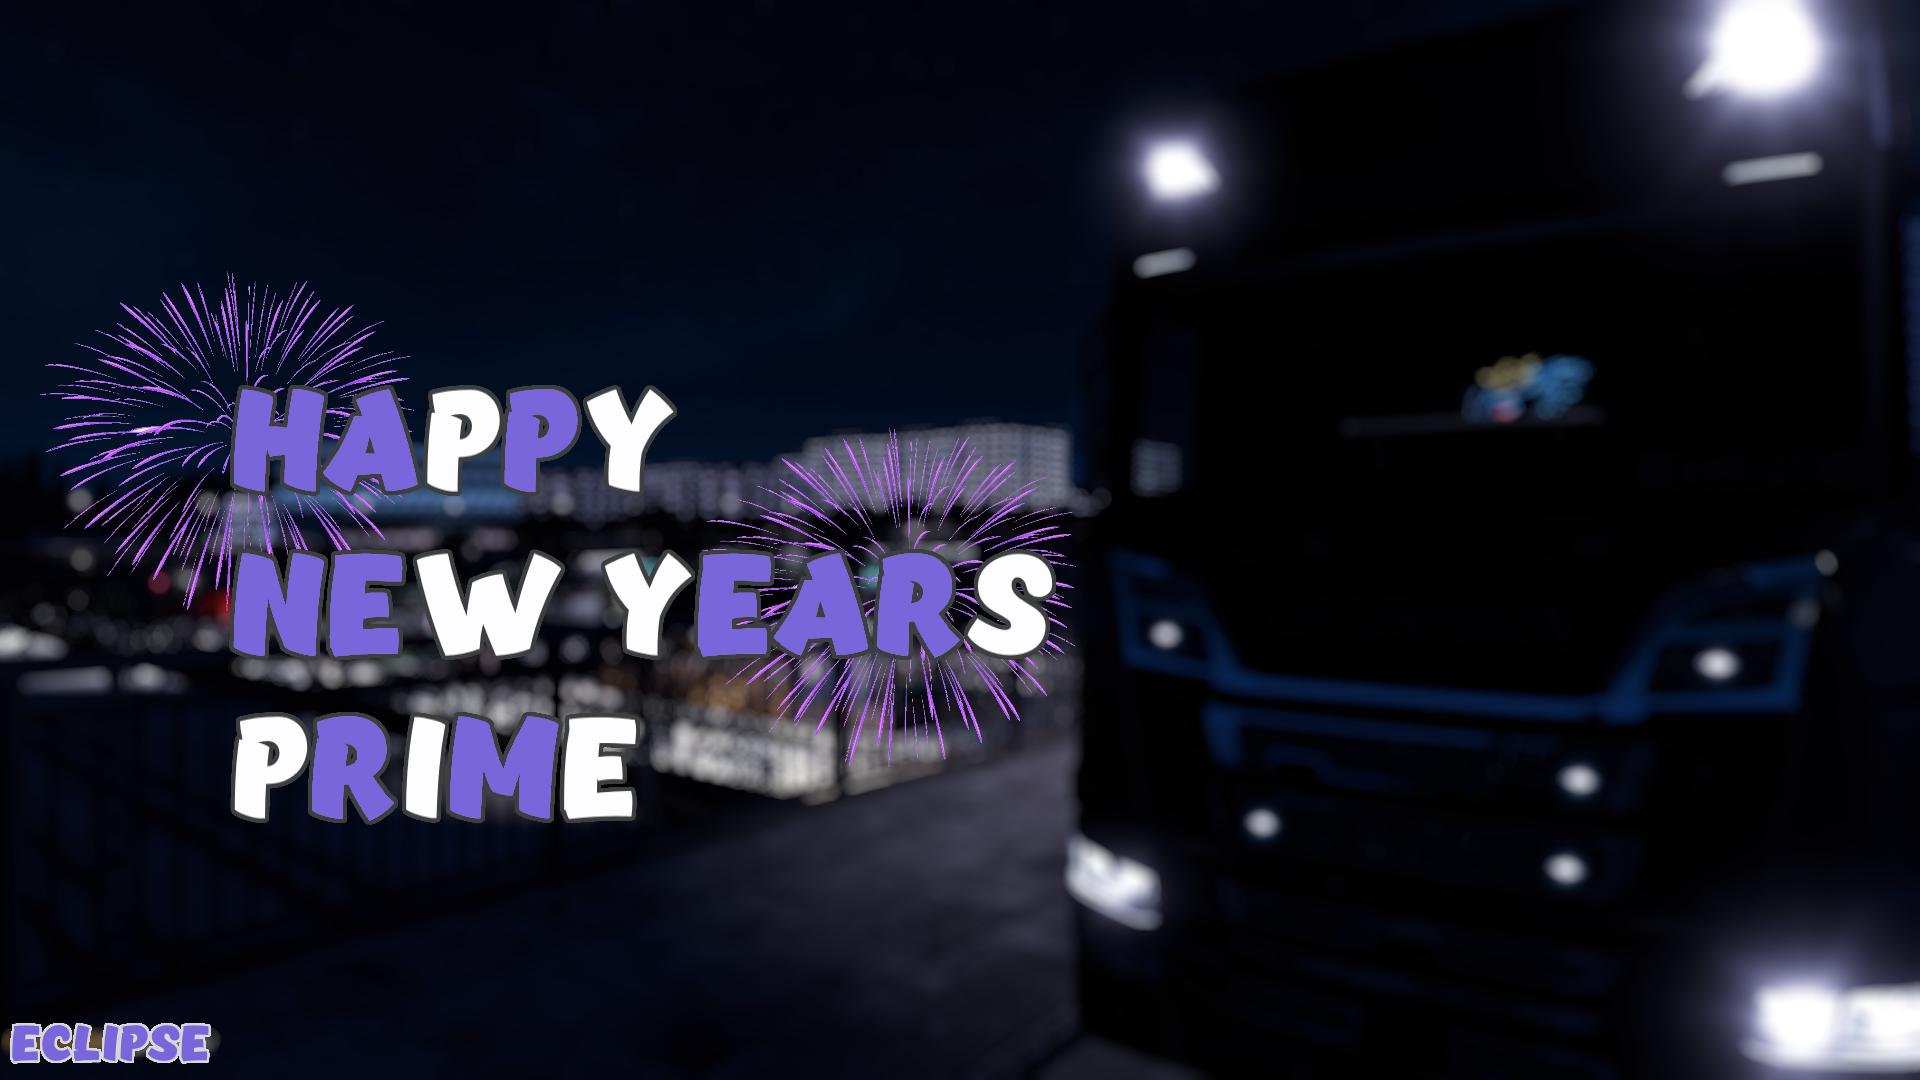 ets2_20181231_092630_00.png